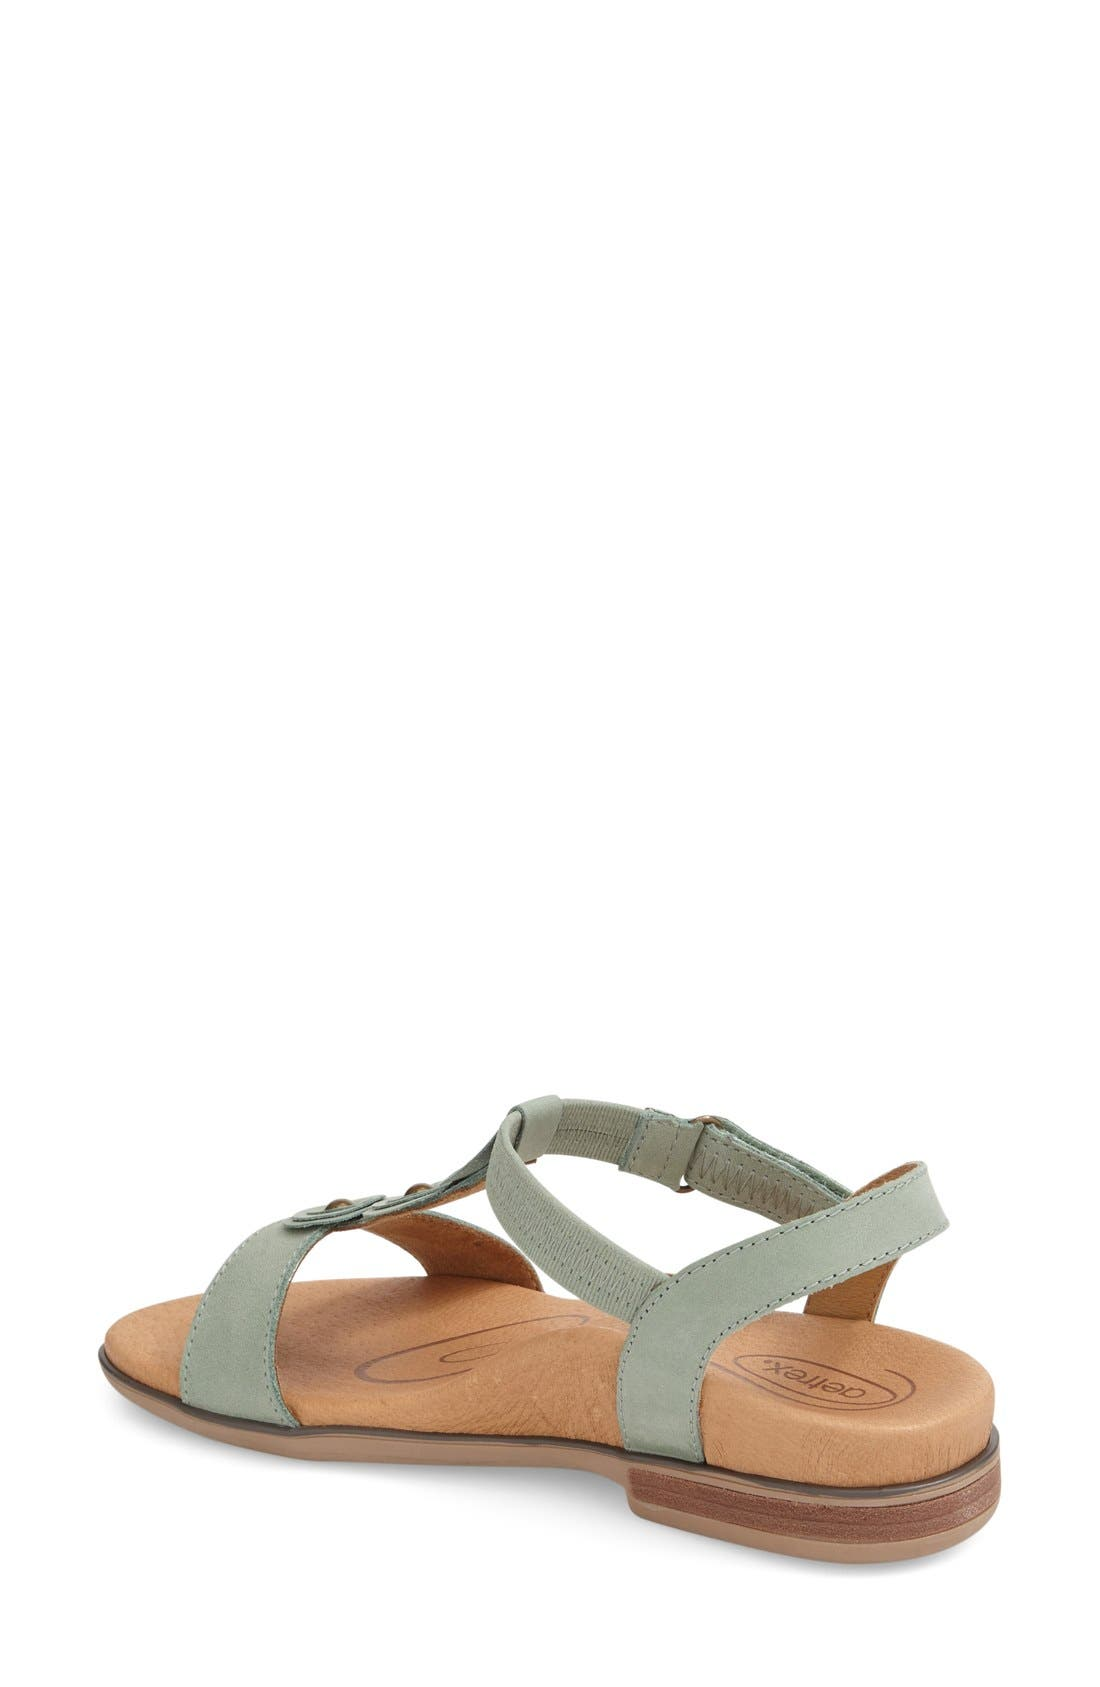 Alternate Image 2  - Aetrex 'Sharon' T-Strap Sandal (Women)